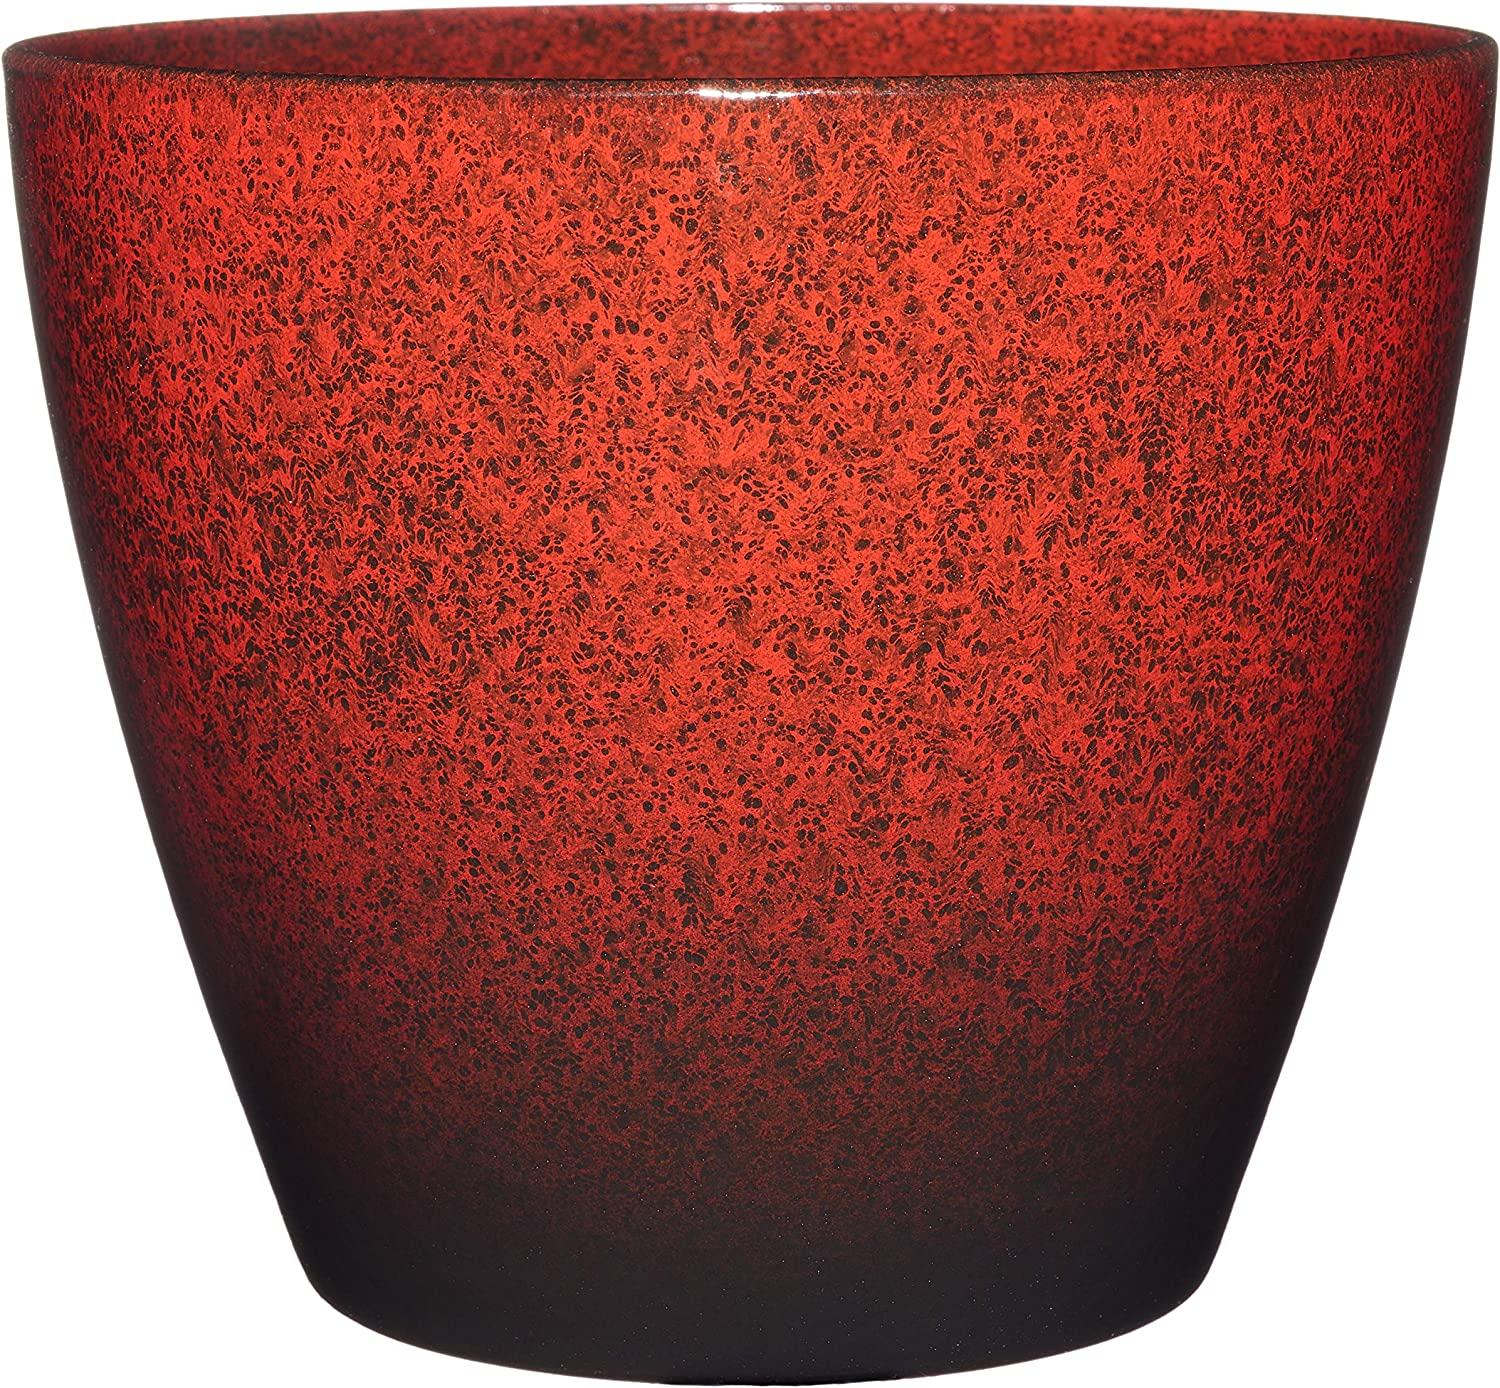 "Classic Home and Garden 807-376R Vogue Planter, 8"", Lava Red"